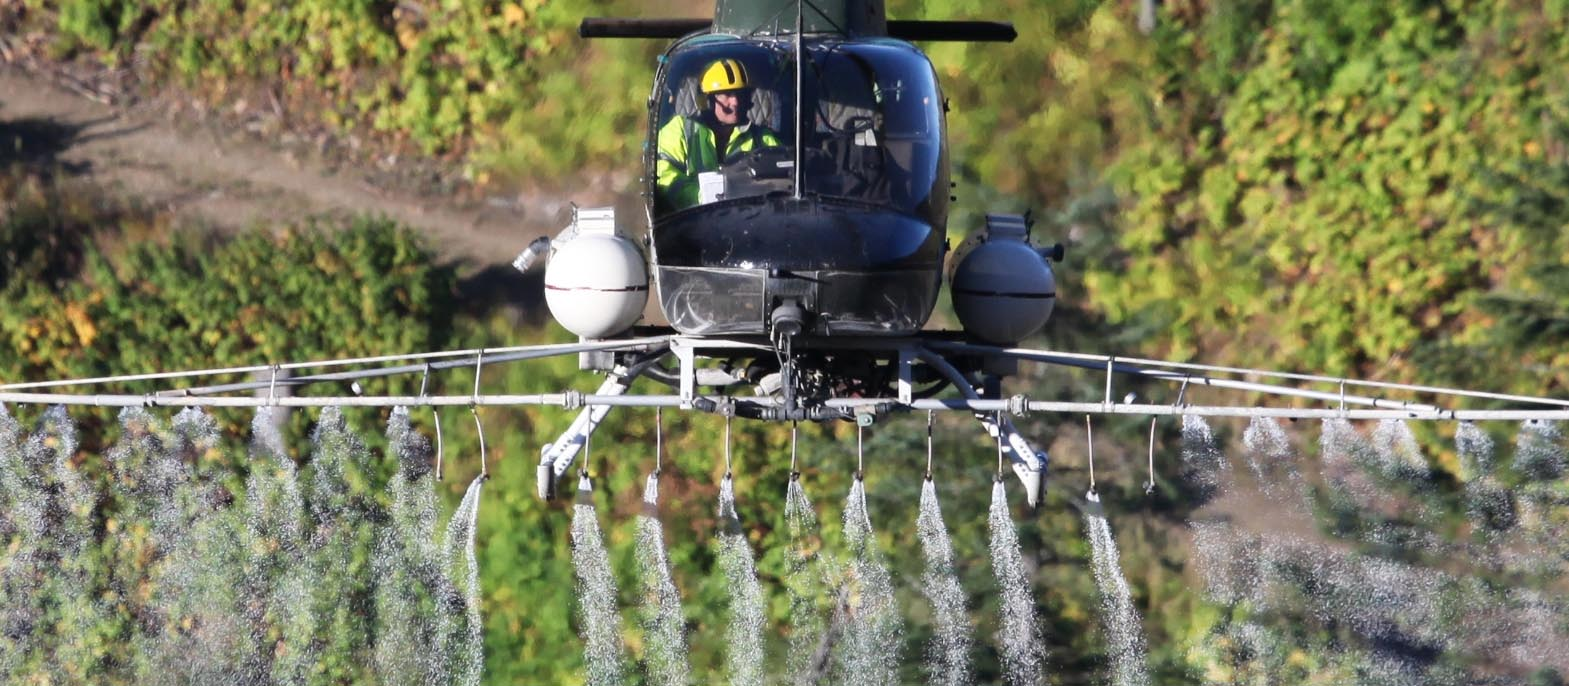 Helicopter flying on herbicides